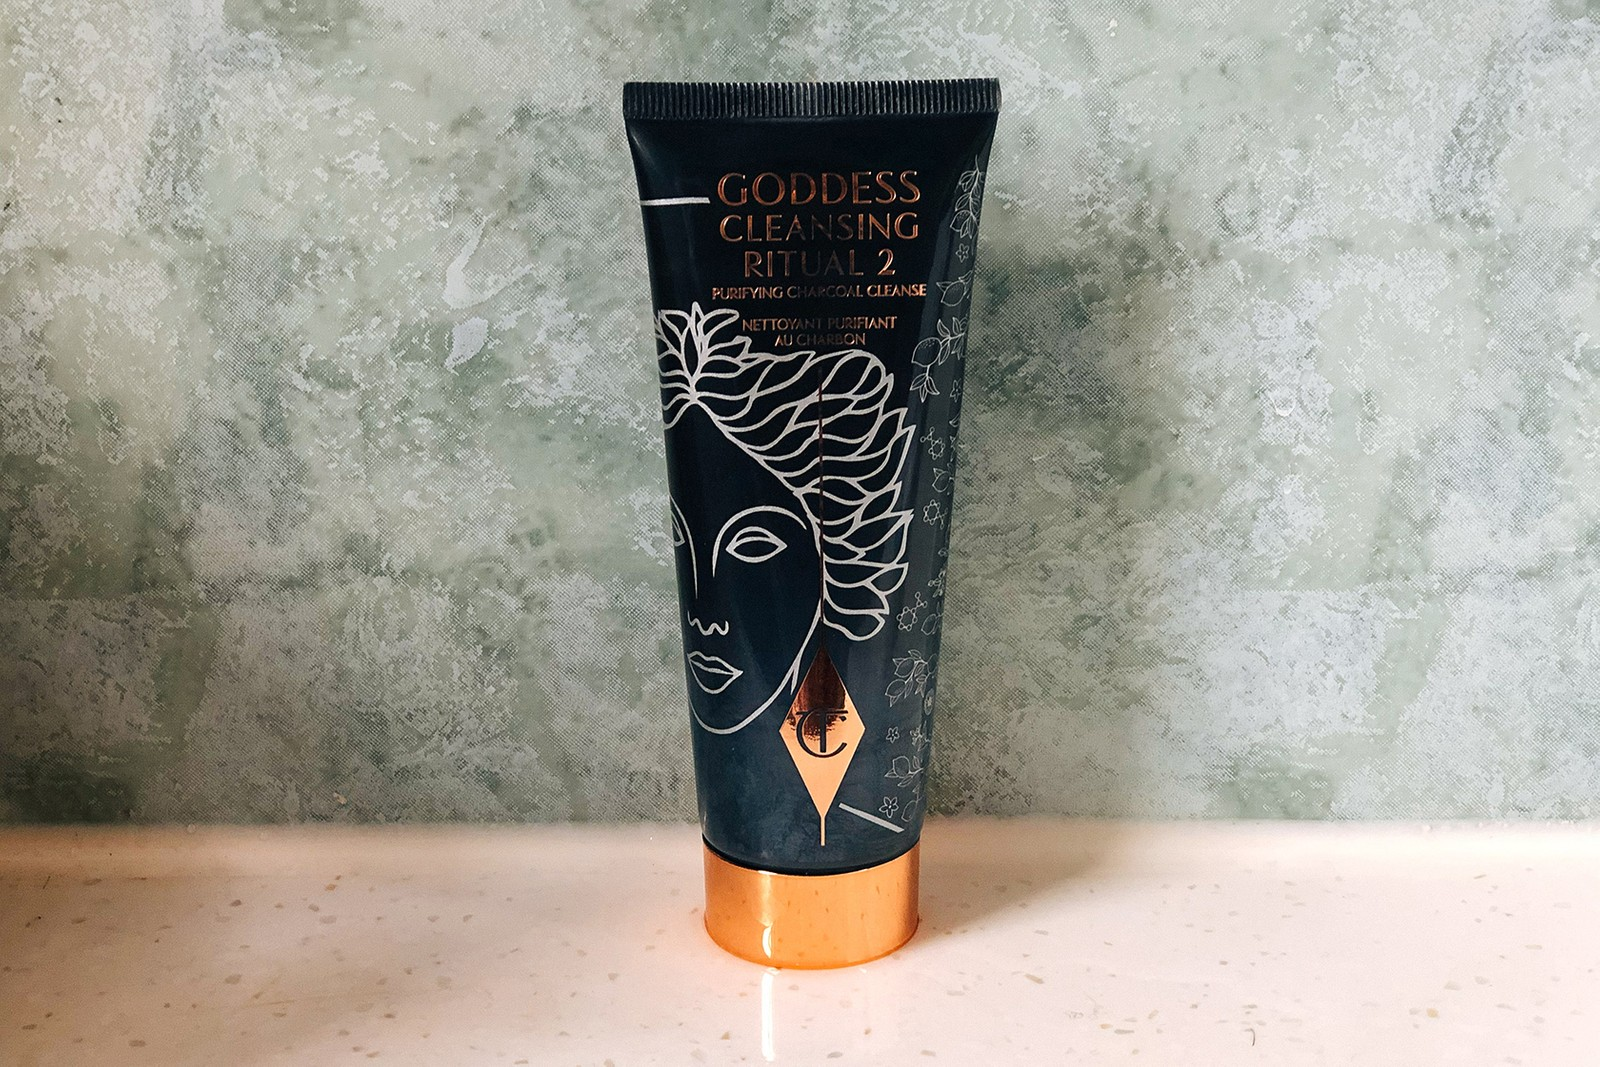 charlotte tilbury goddess cleansing ritual duo cleanser beauty skincare